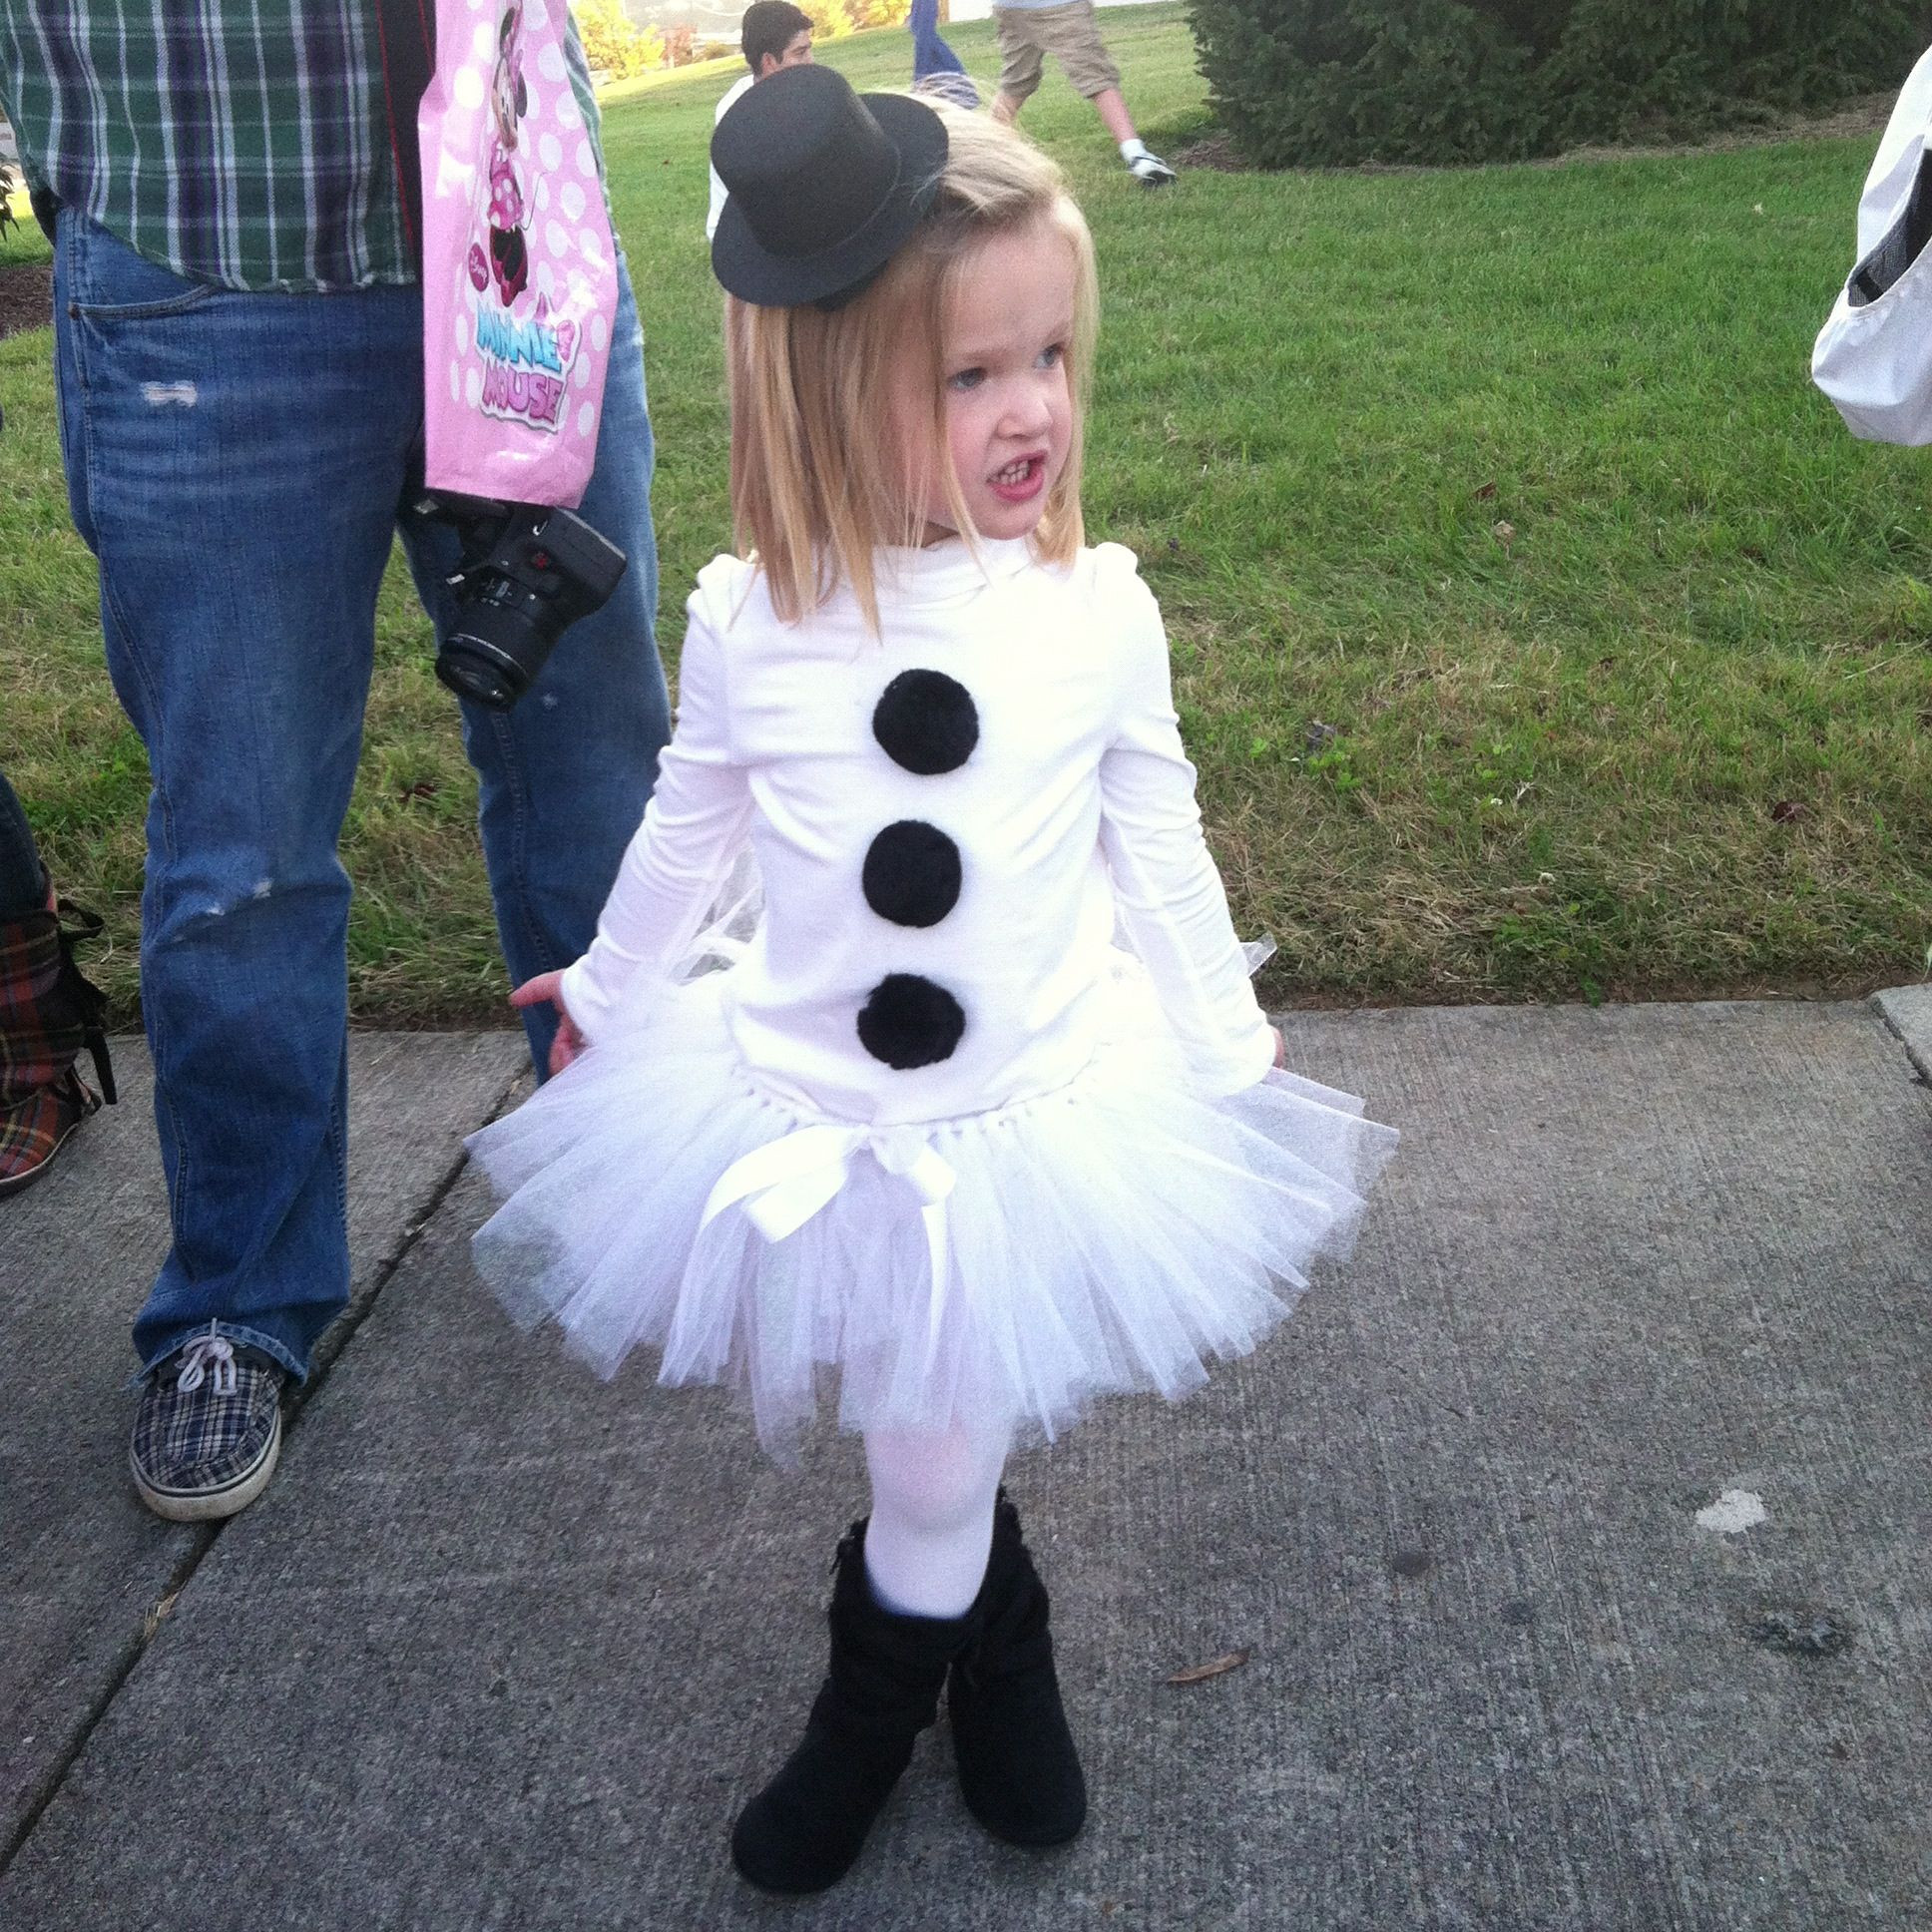 Best ideas about DIY Snowman Costumes . Save or Pin Best 25 Snowman costume ideas on Pinterest Now.